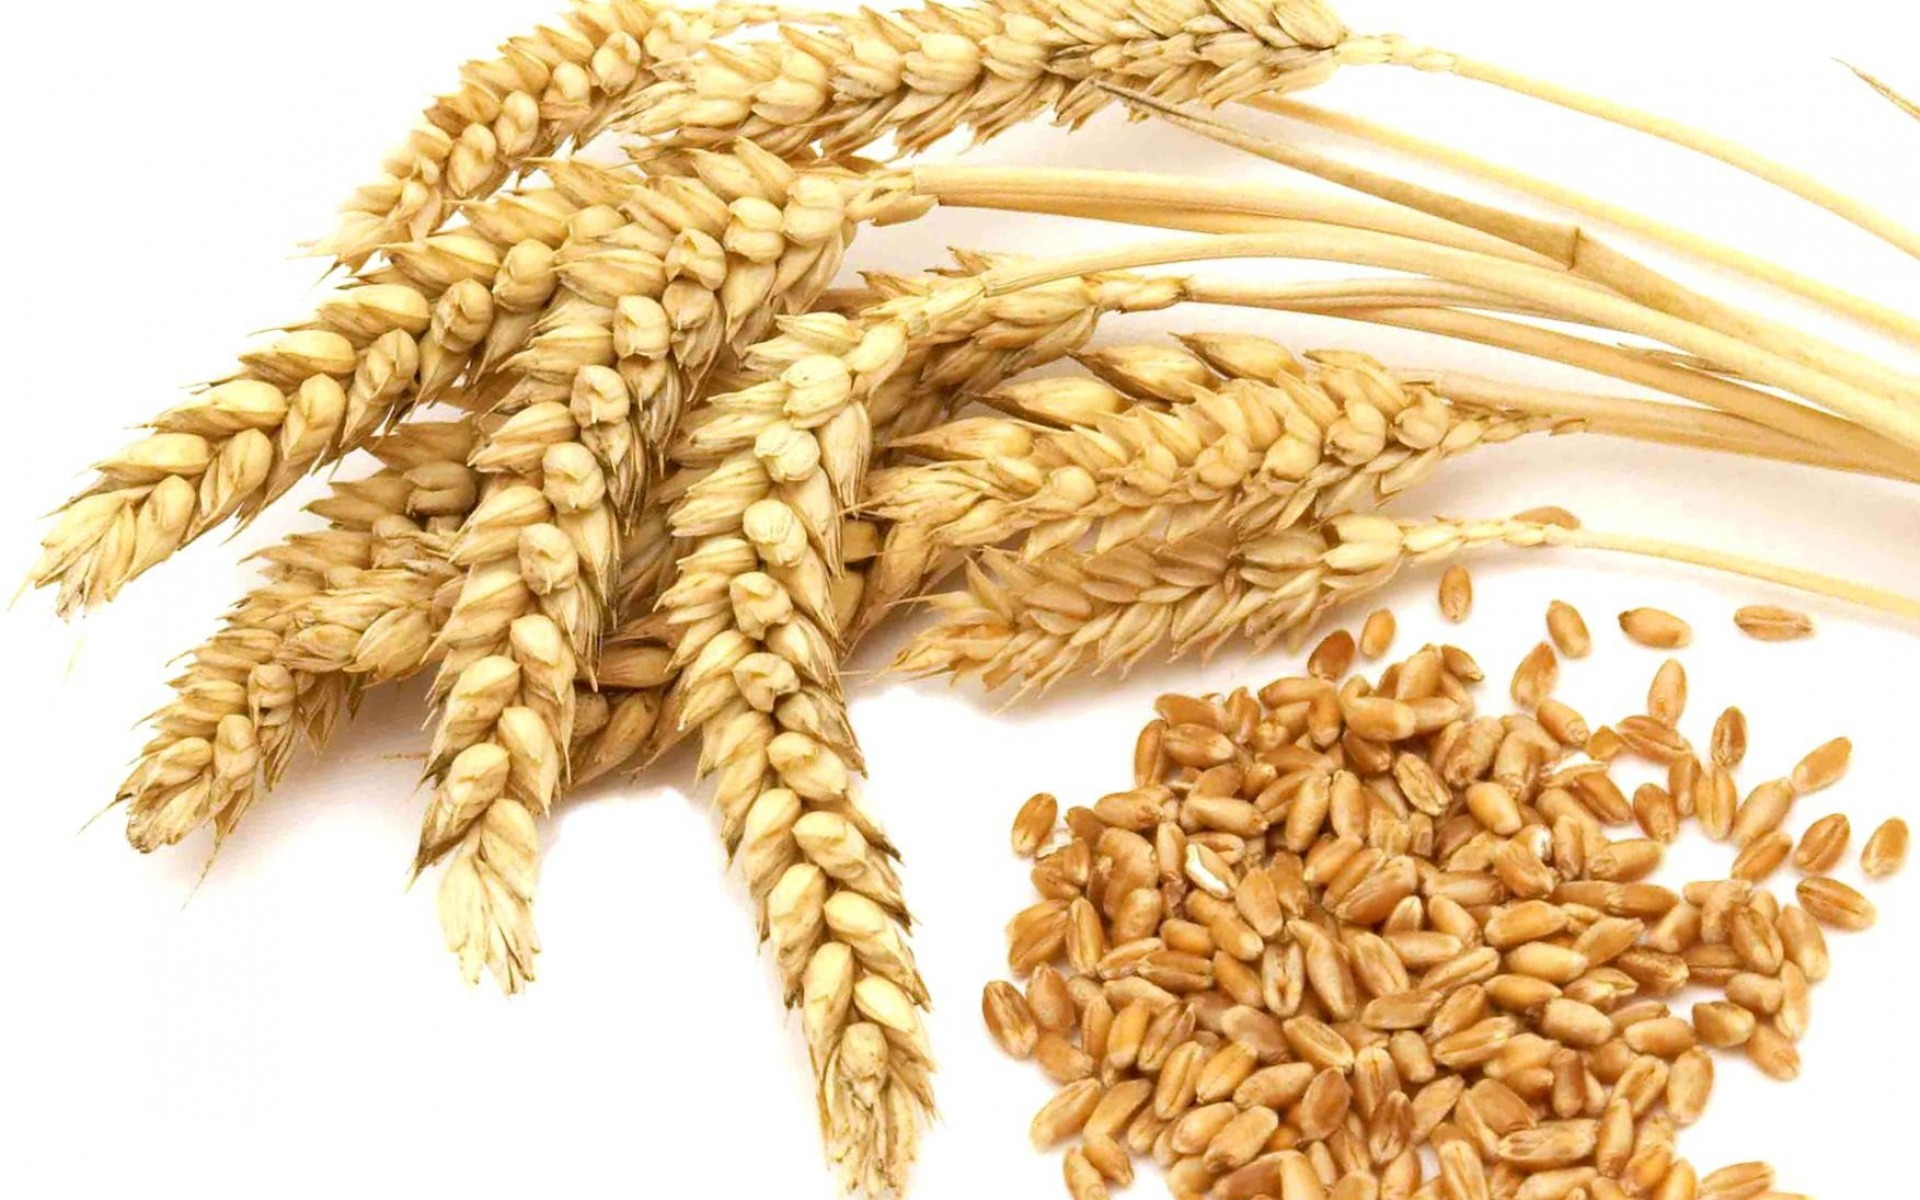 wheat prices doesn't get below $4 on the futures in 2018